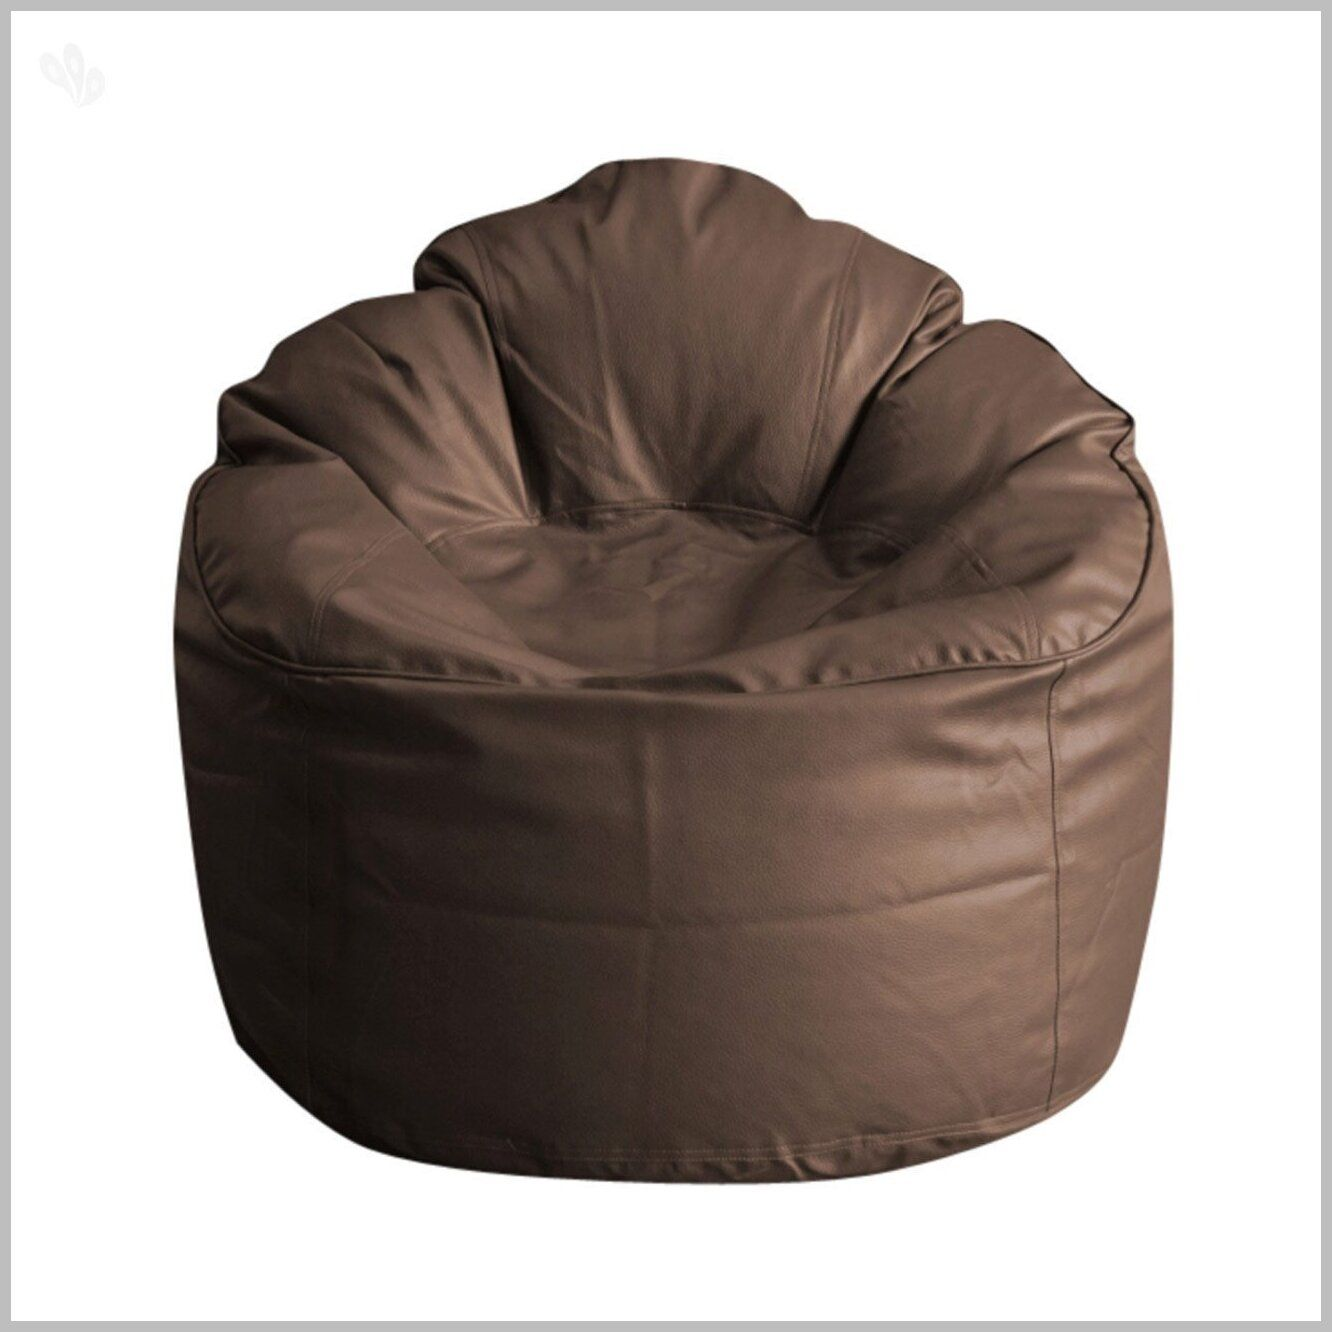 105 Reference Of Bean Bag Chair Bed Amazon In 2020 Bean Bag Chair Bed Bean Bag Chair Chair Bed